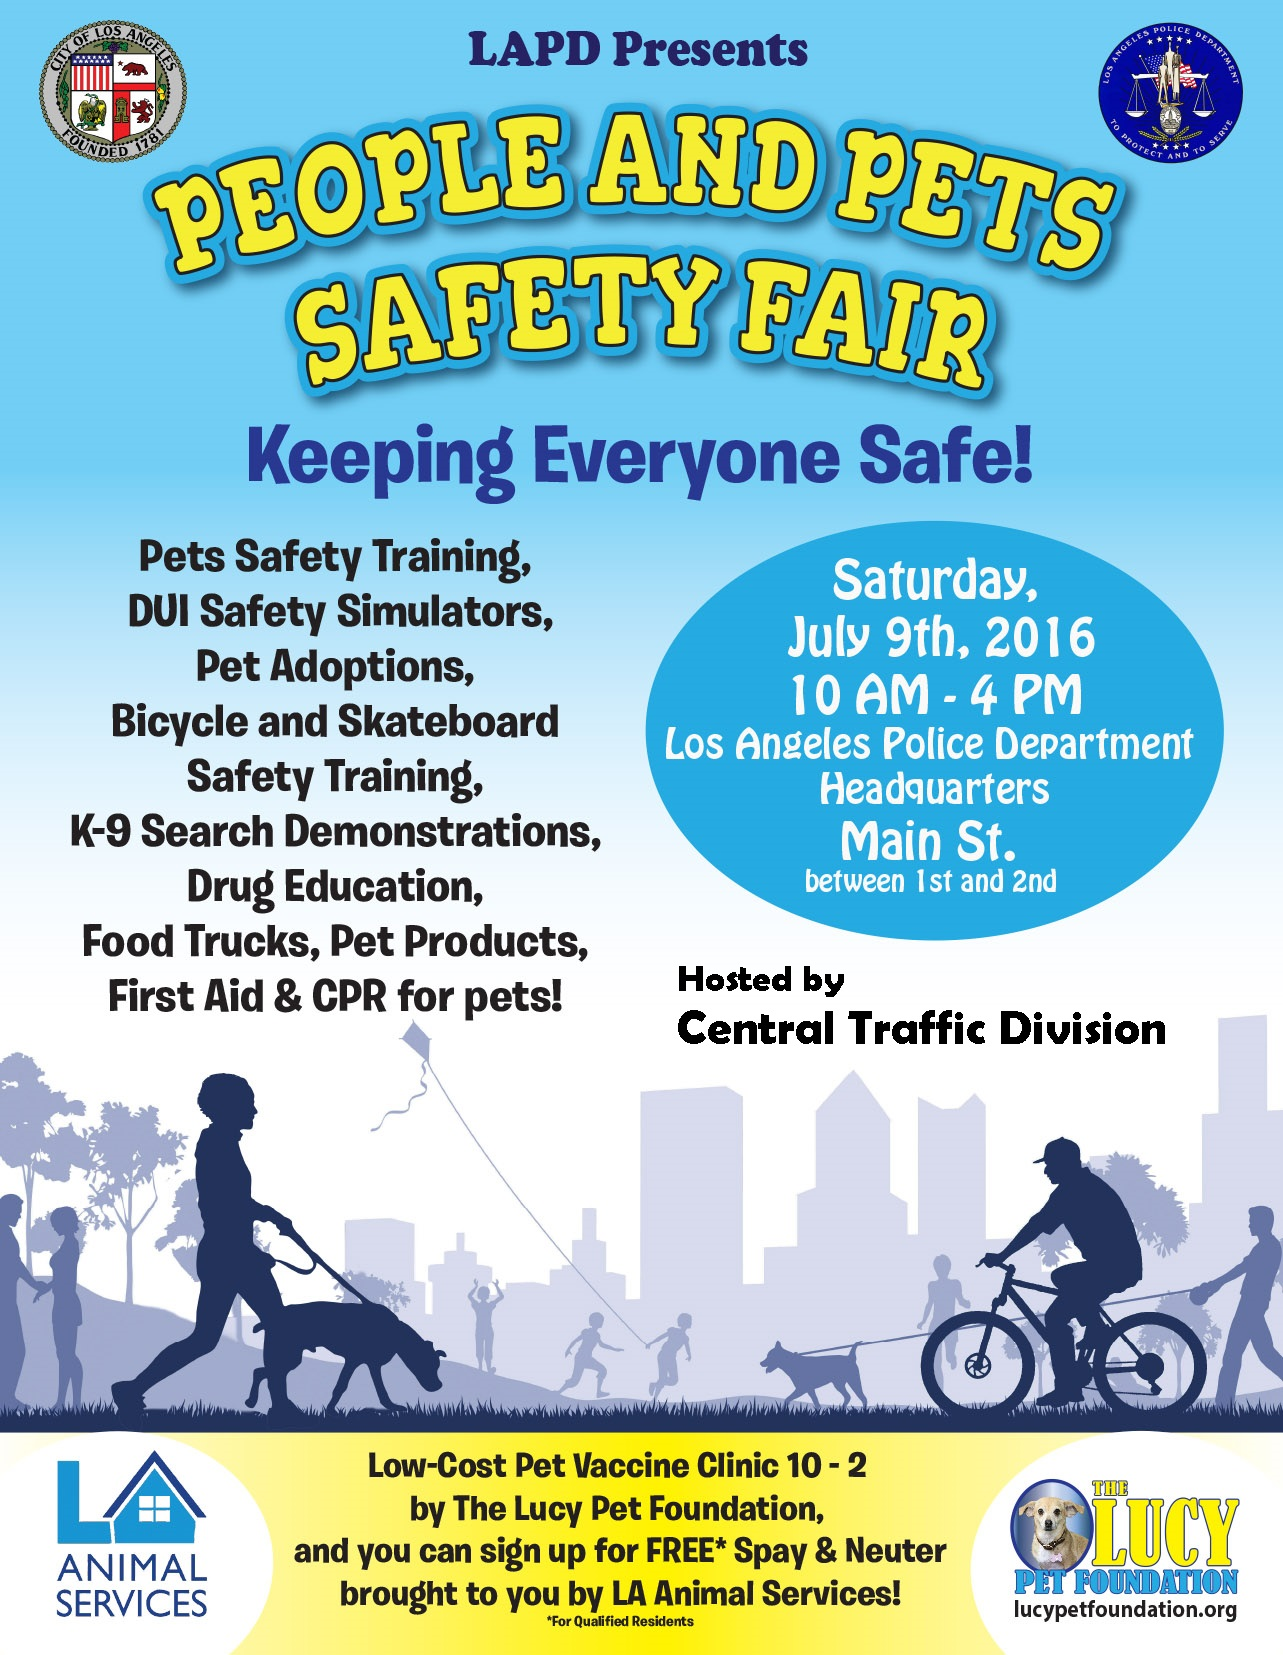 Safety_Fair_Flier.jpg